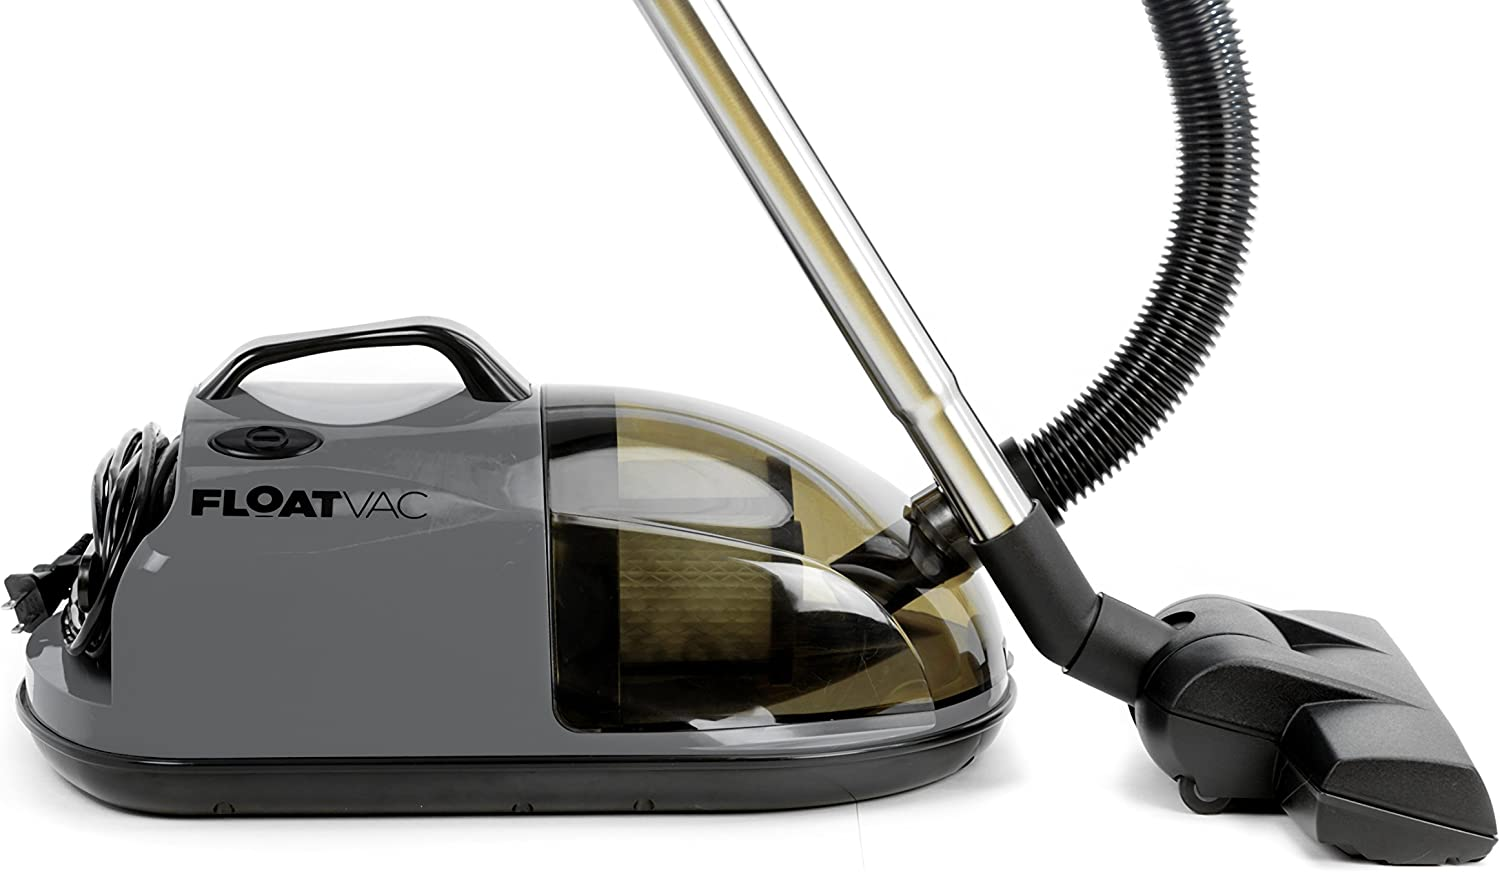 FloatVac bagless Canister Vacuum Floats on Invisible air Cushion, Extremely Lightweight, Powerful Suction - Smoke Grey